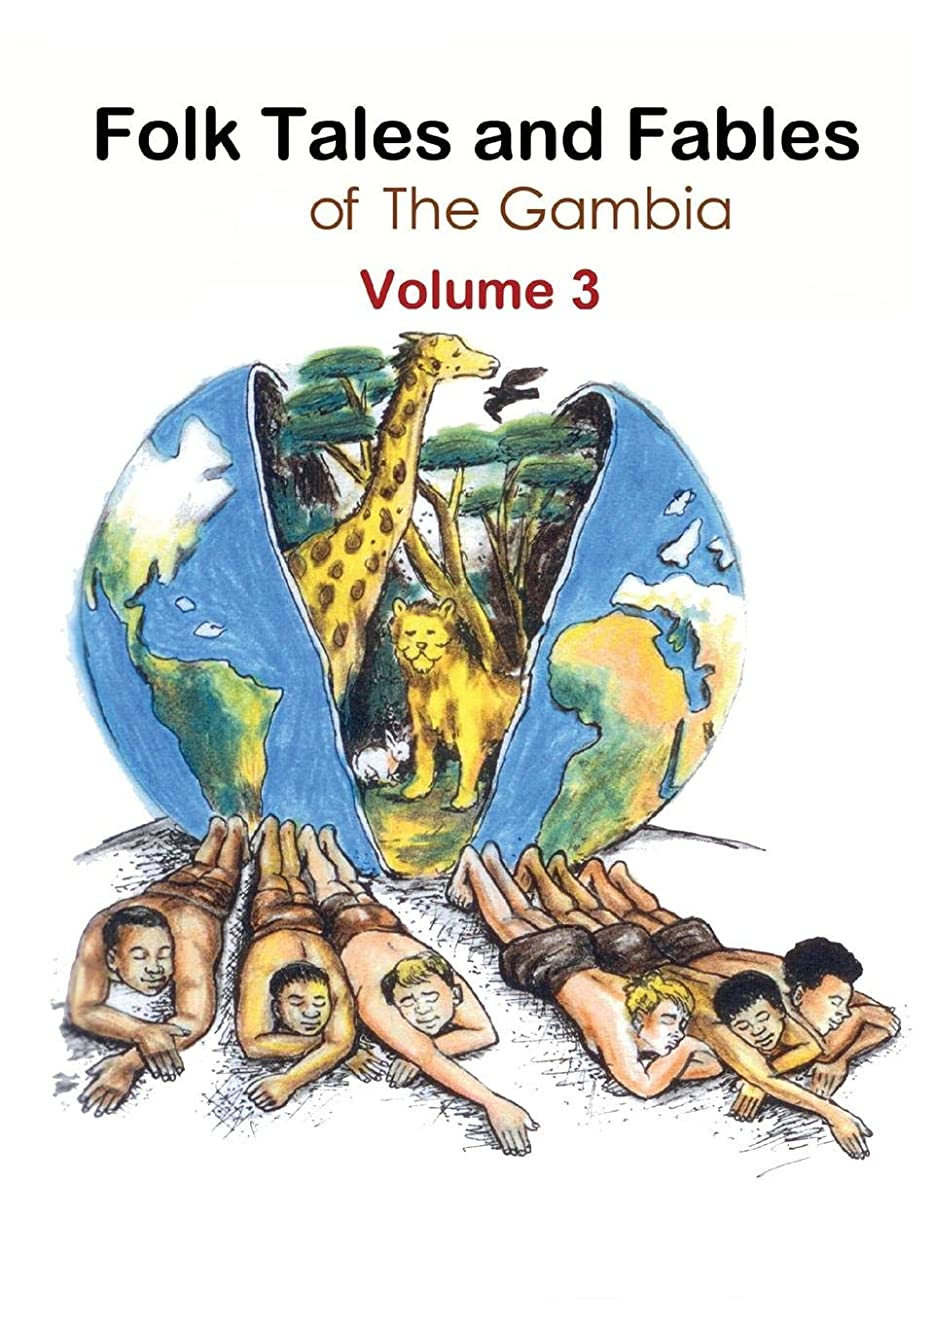 Folk Tales and Fables from the Gambia: Volume 3